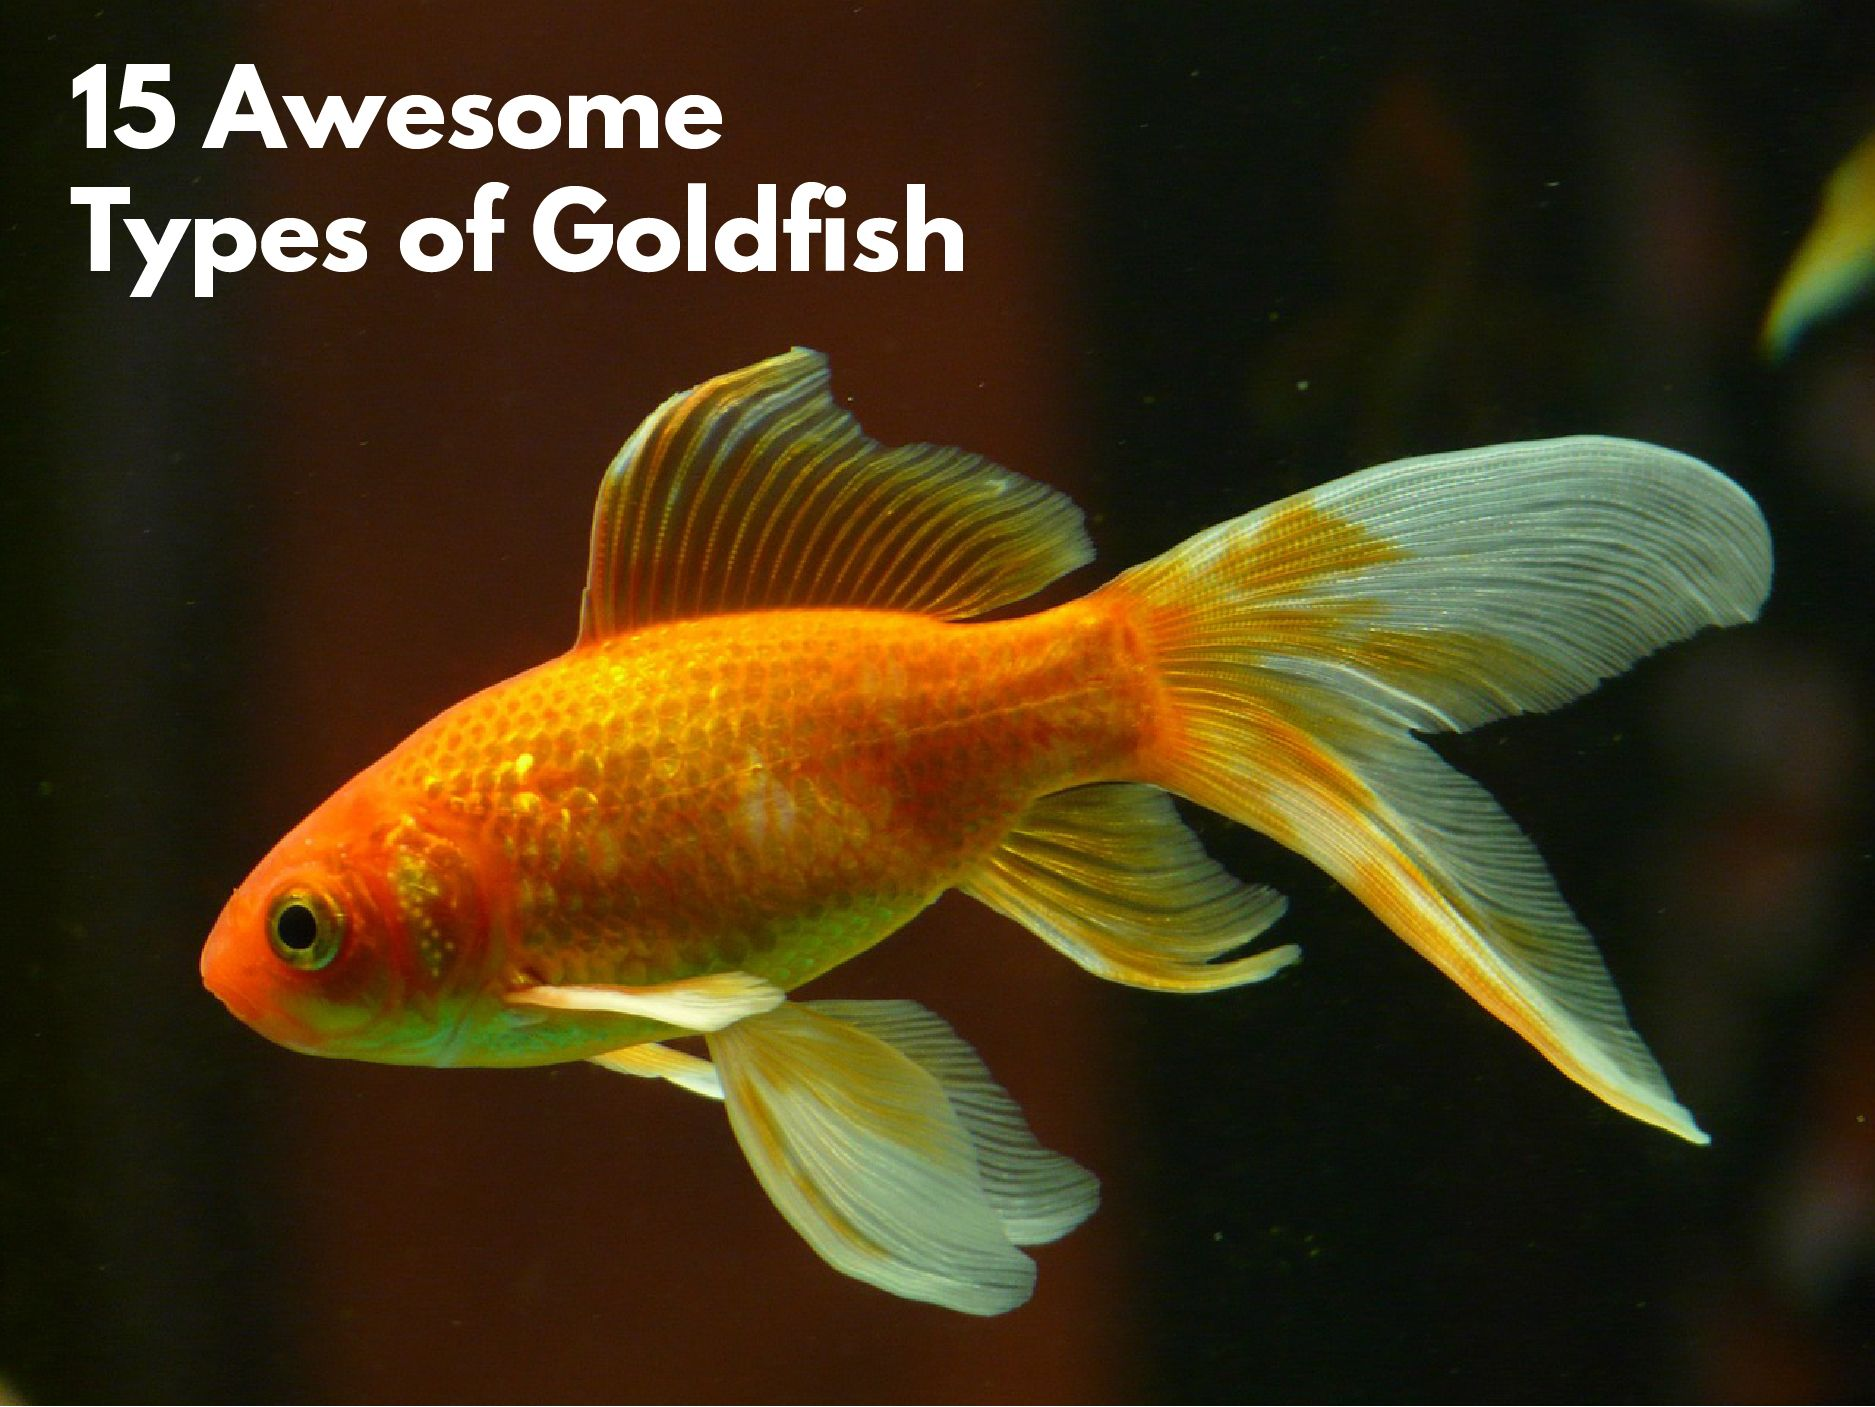 The most popular variety of goldfish